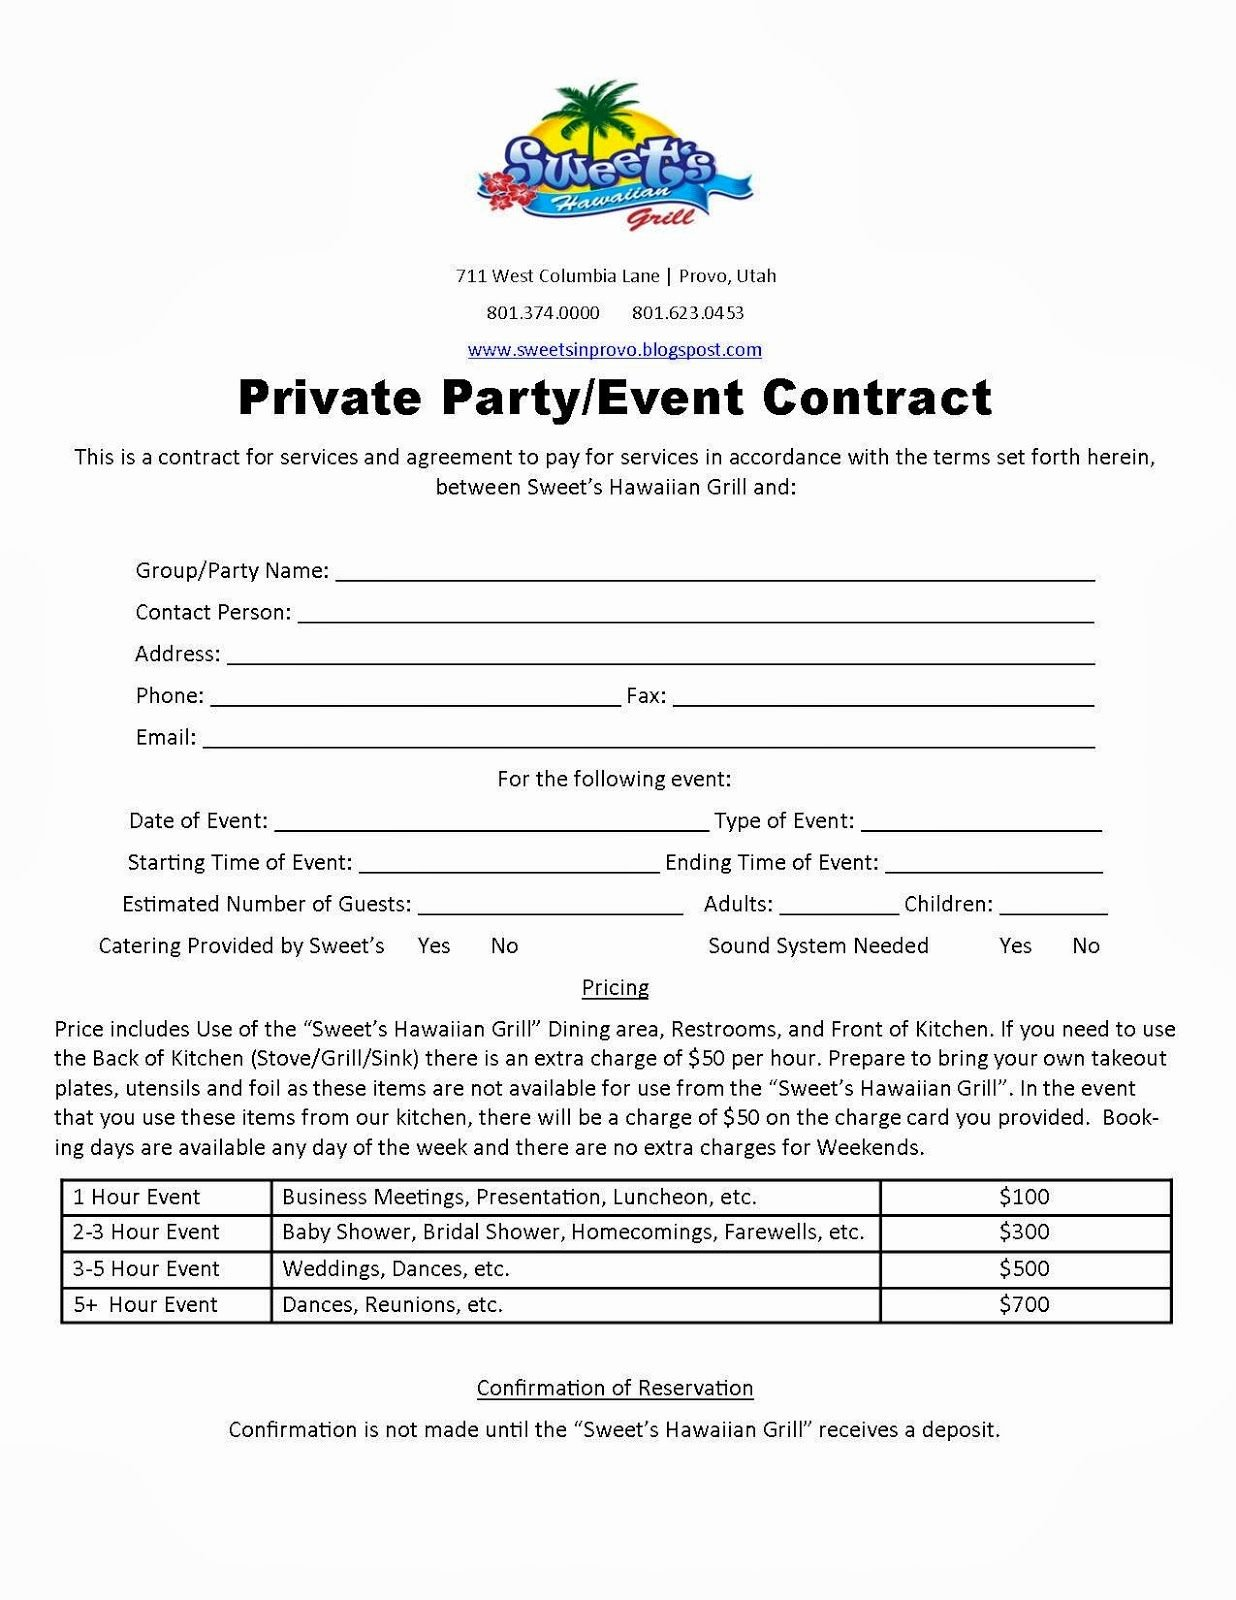 Wedding Planning Contract Templates Fresh Party Planner Contract Template Google Search